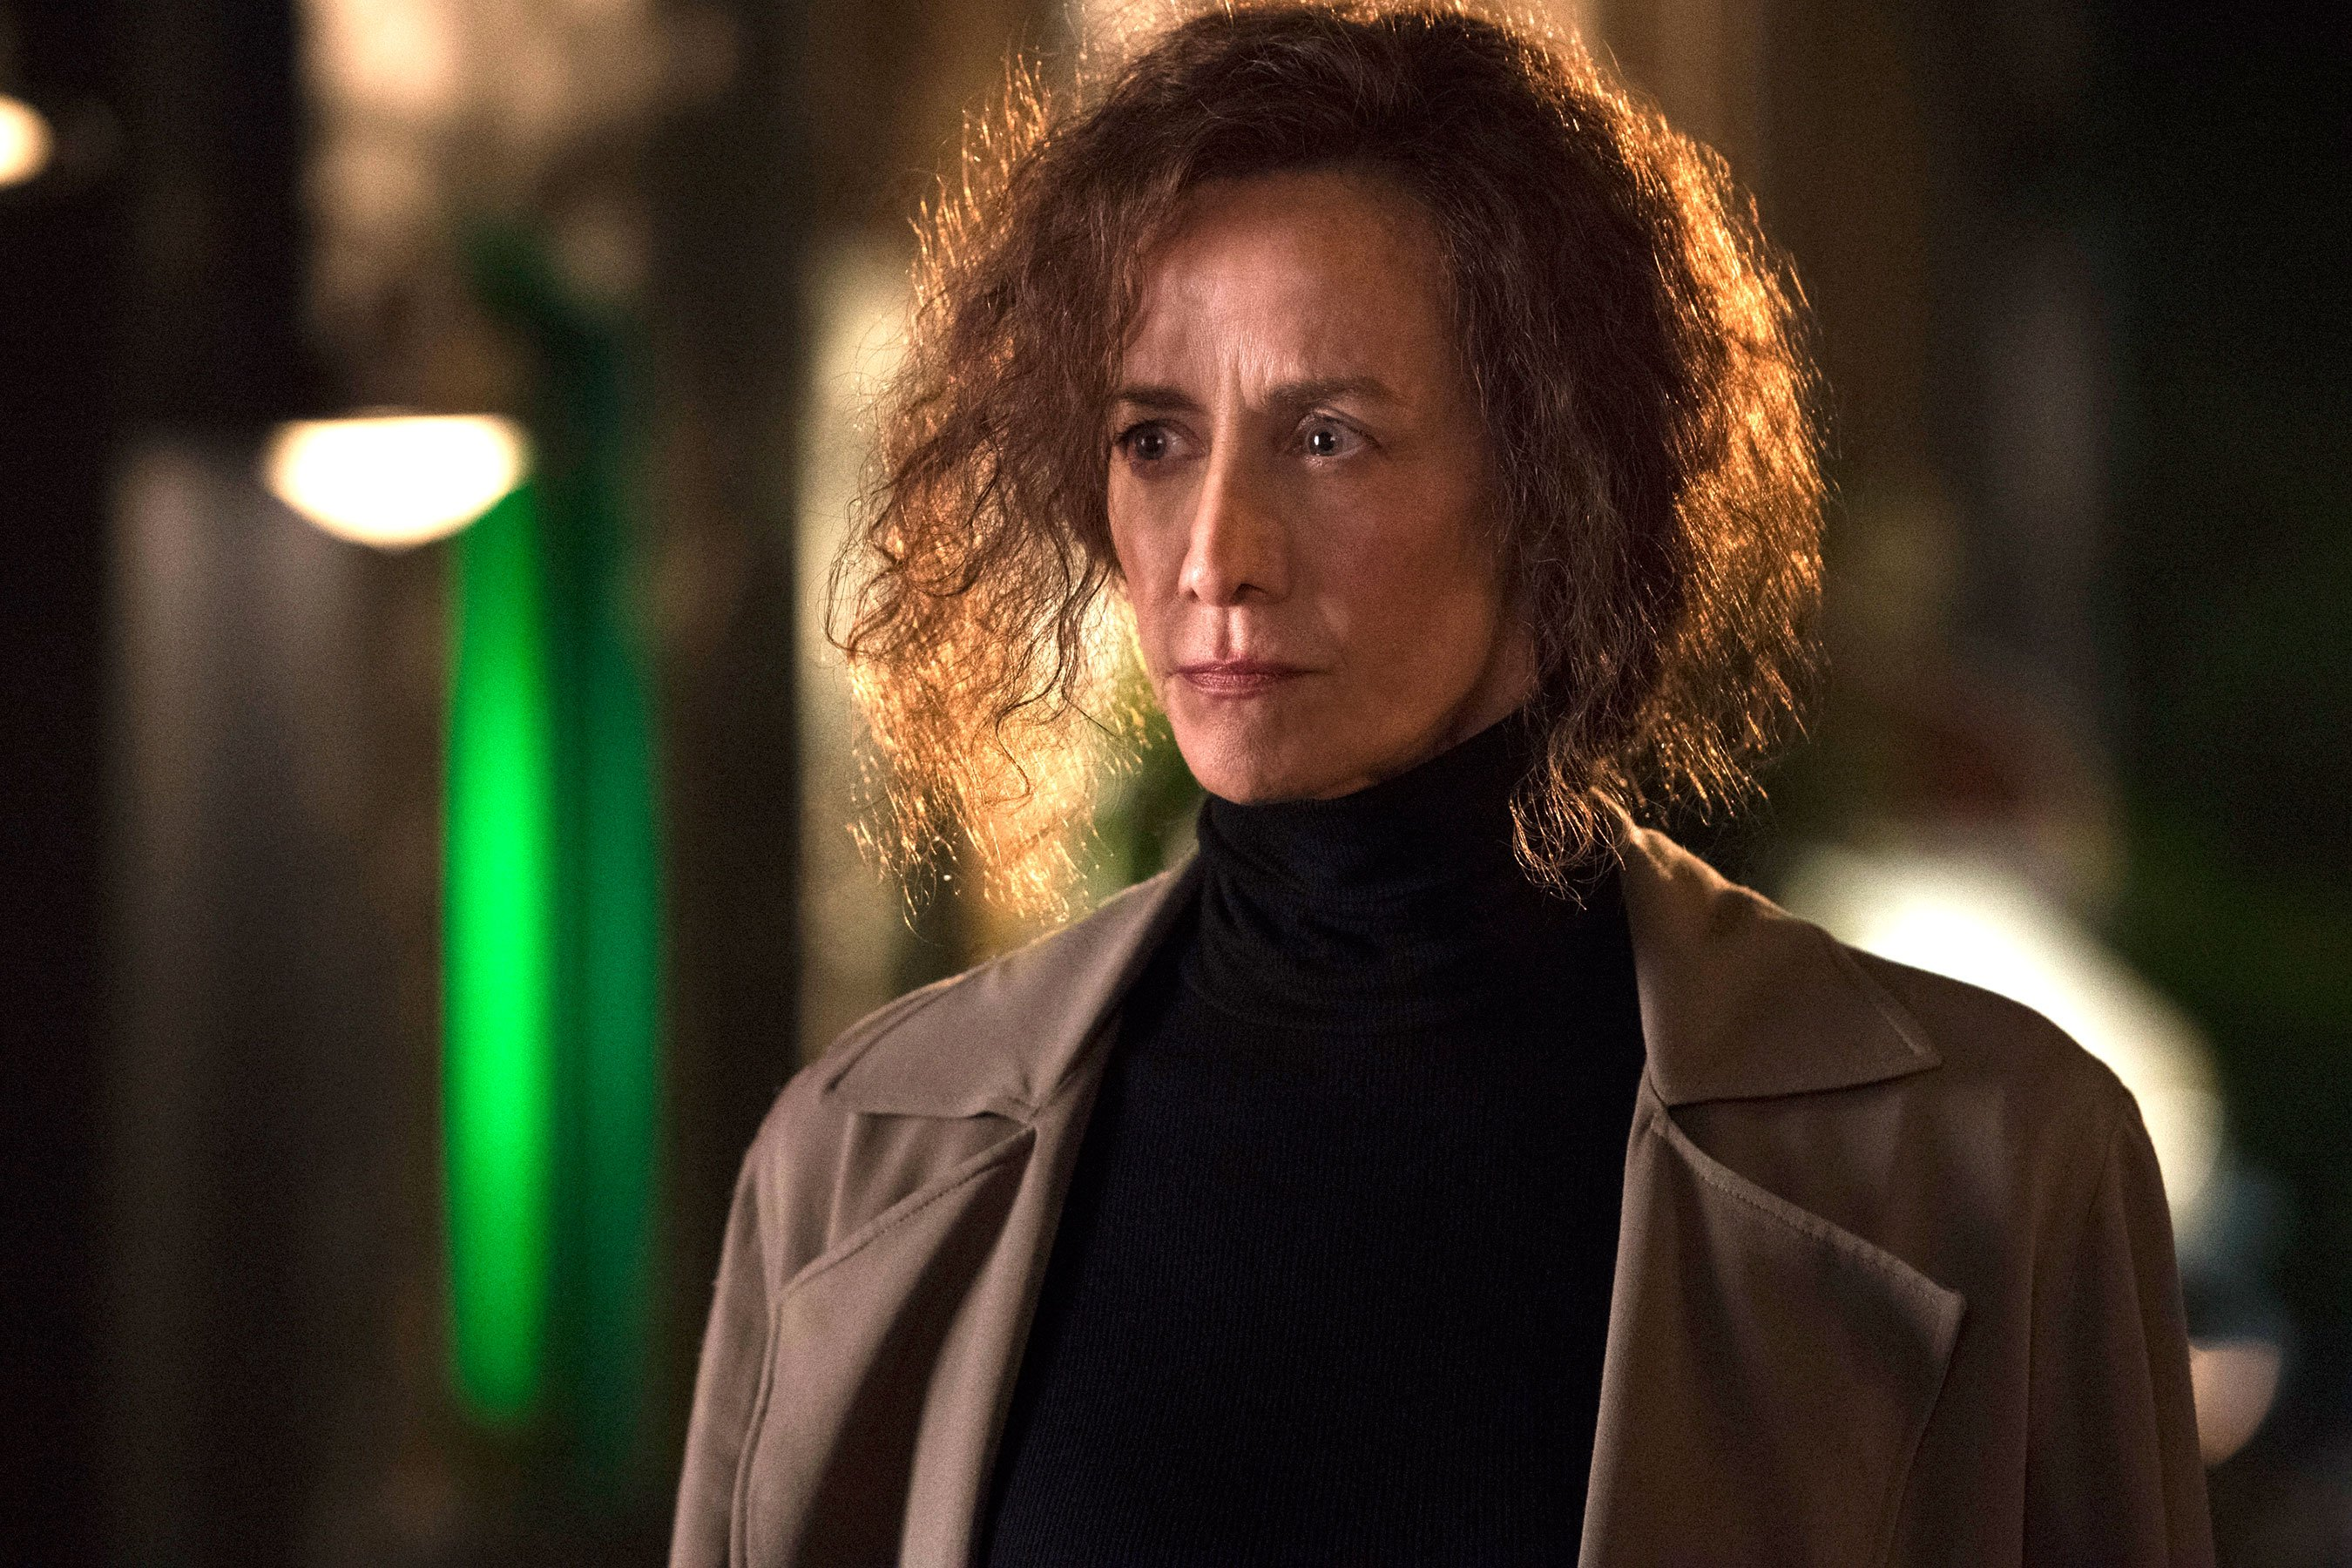 Marvel's Jessica Jones: Janet McTeer on her mysterious season 2 role